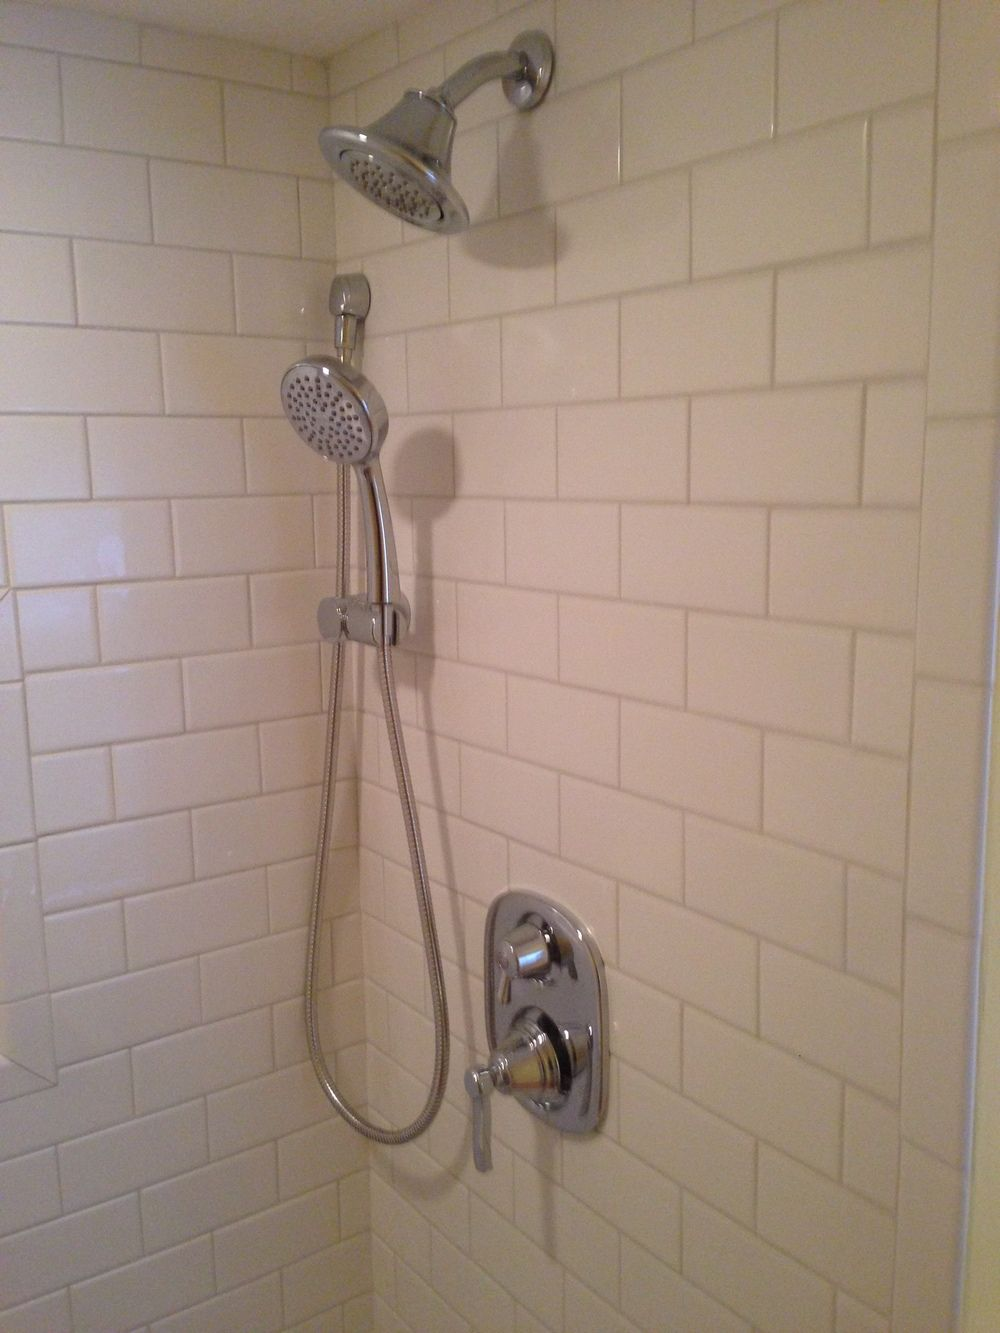 Converting Tub to walk-in shower | Tubs and Shower valve